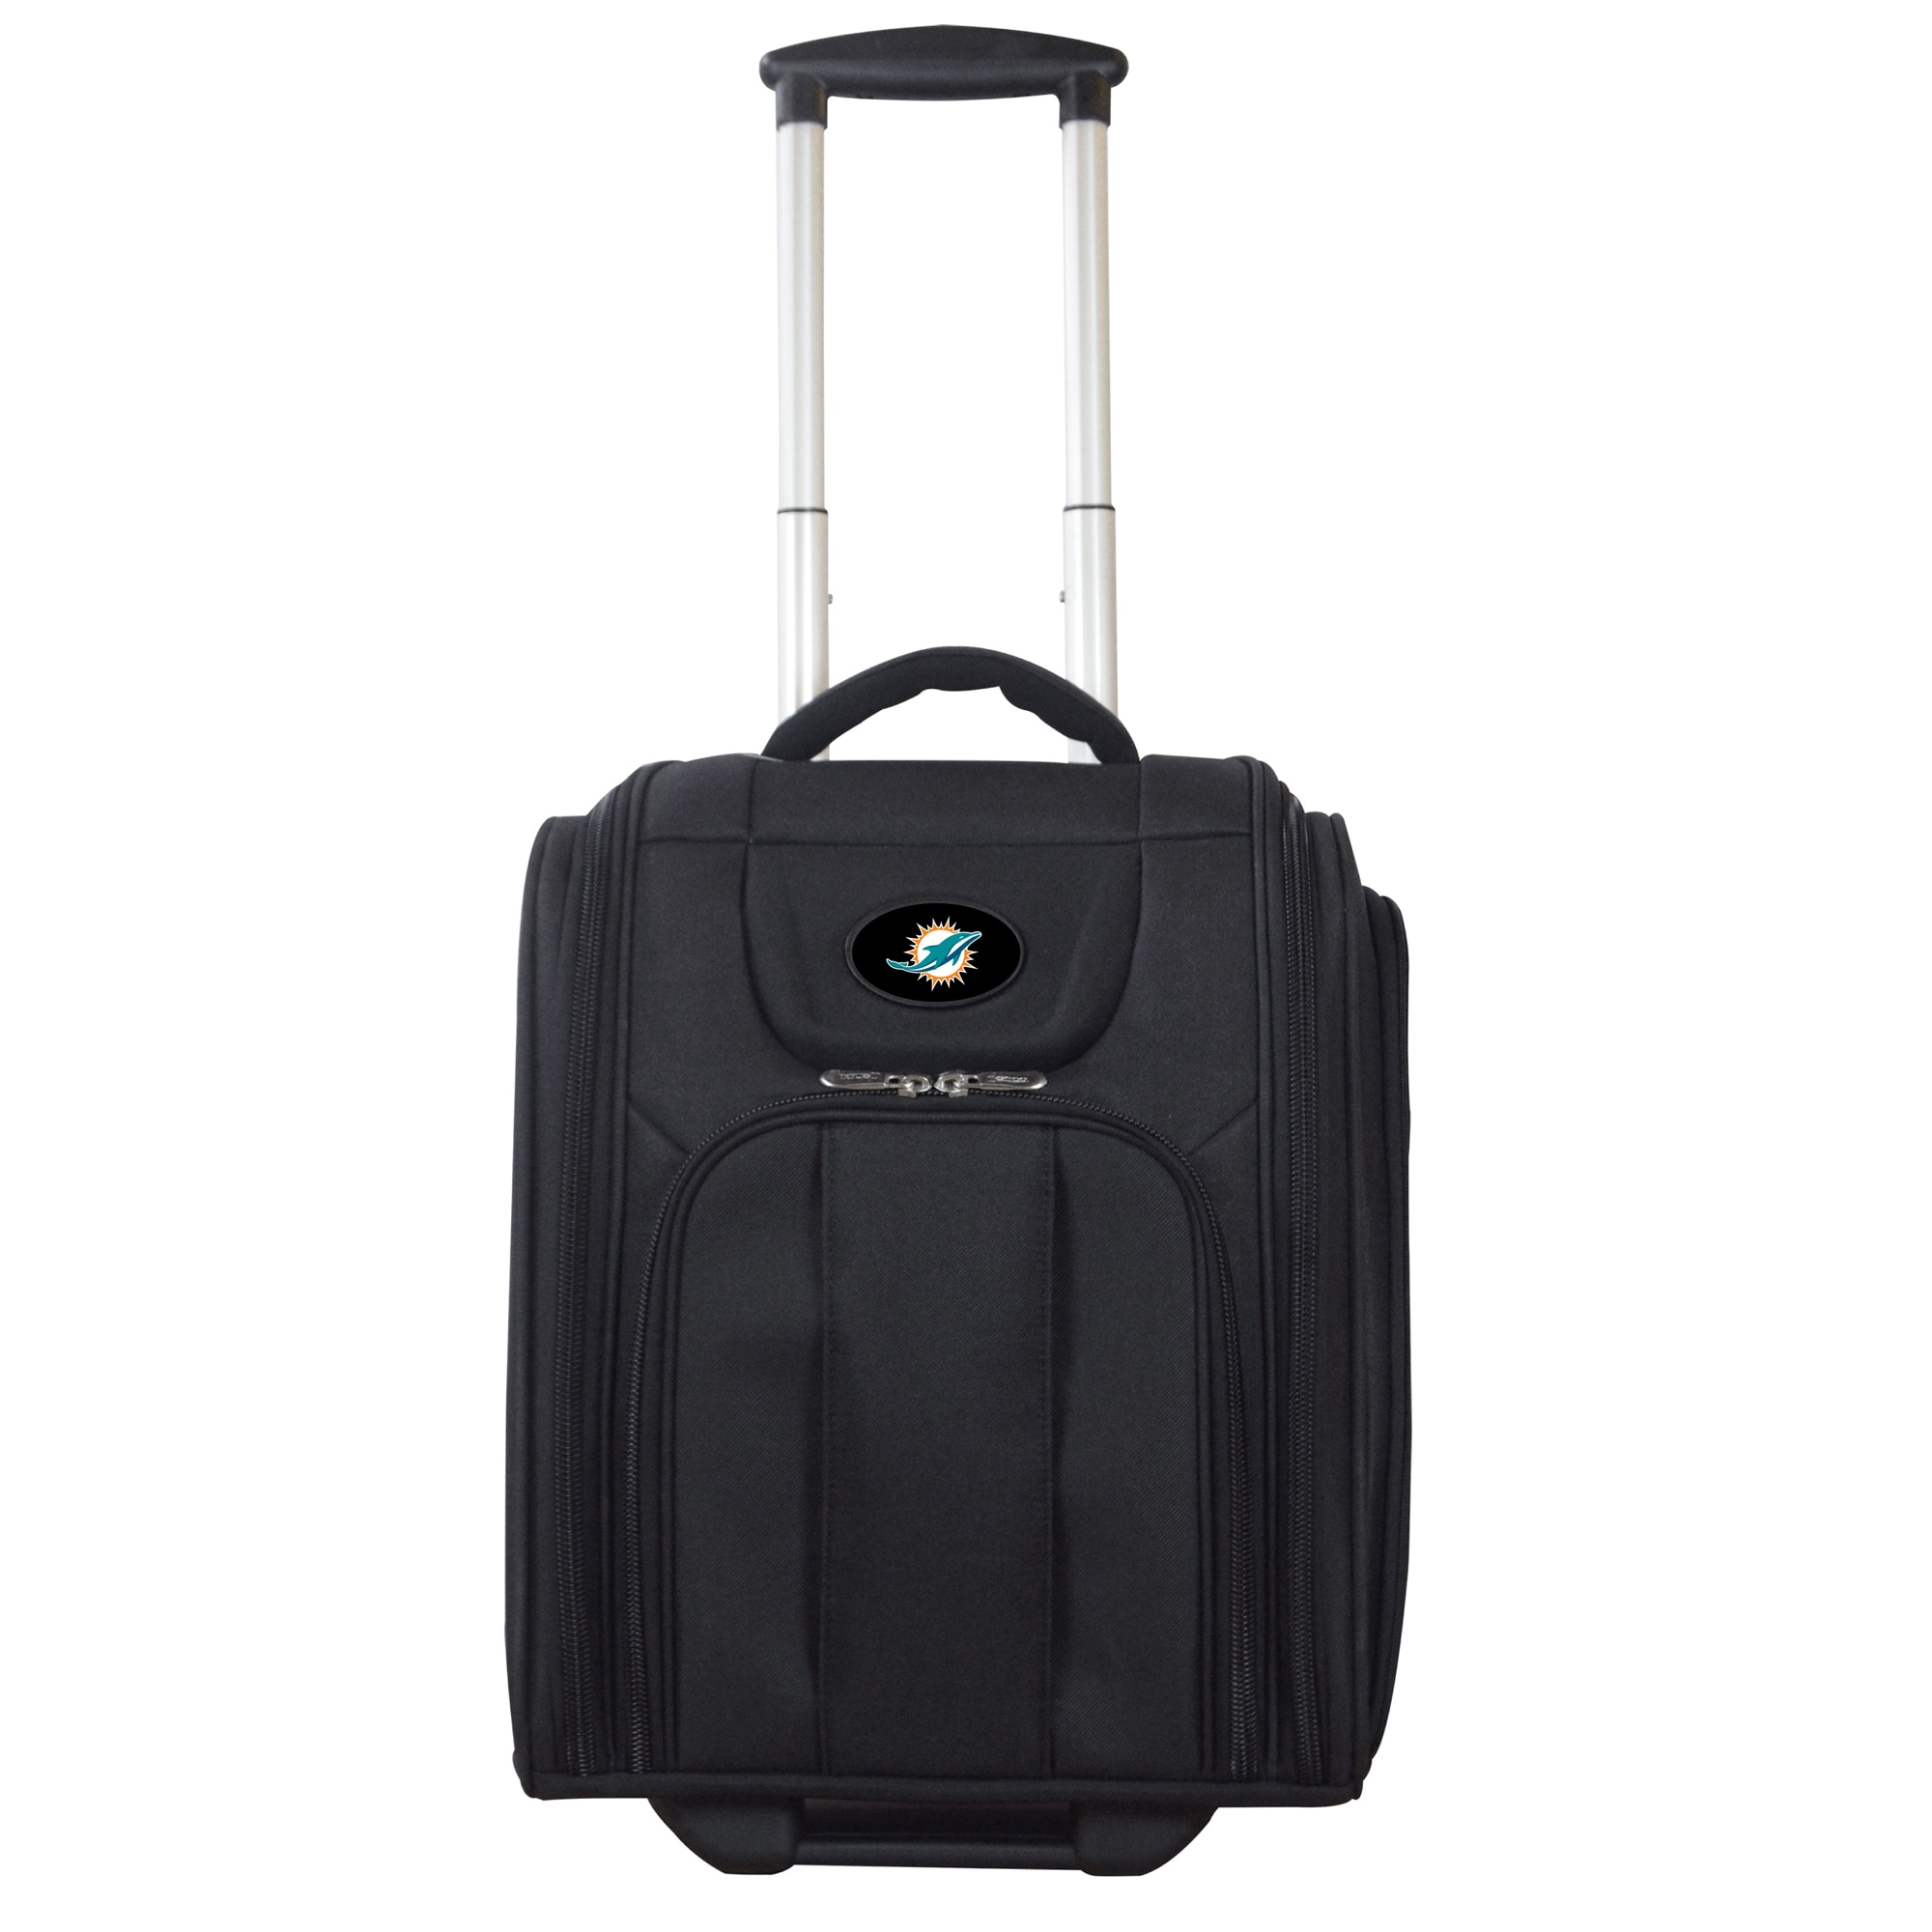 """Miami Dolphins 16"""" Business Tote Laptop Bag - Black"""